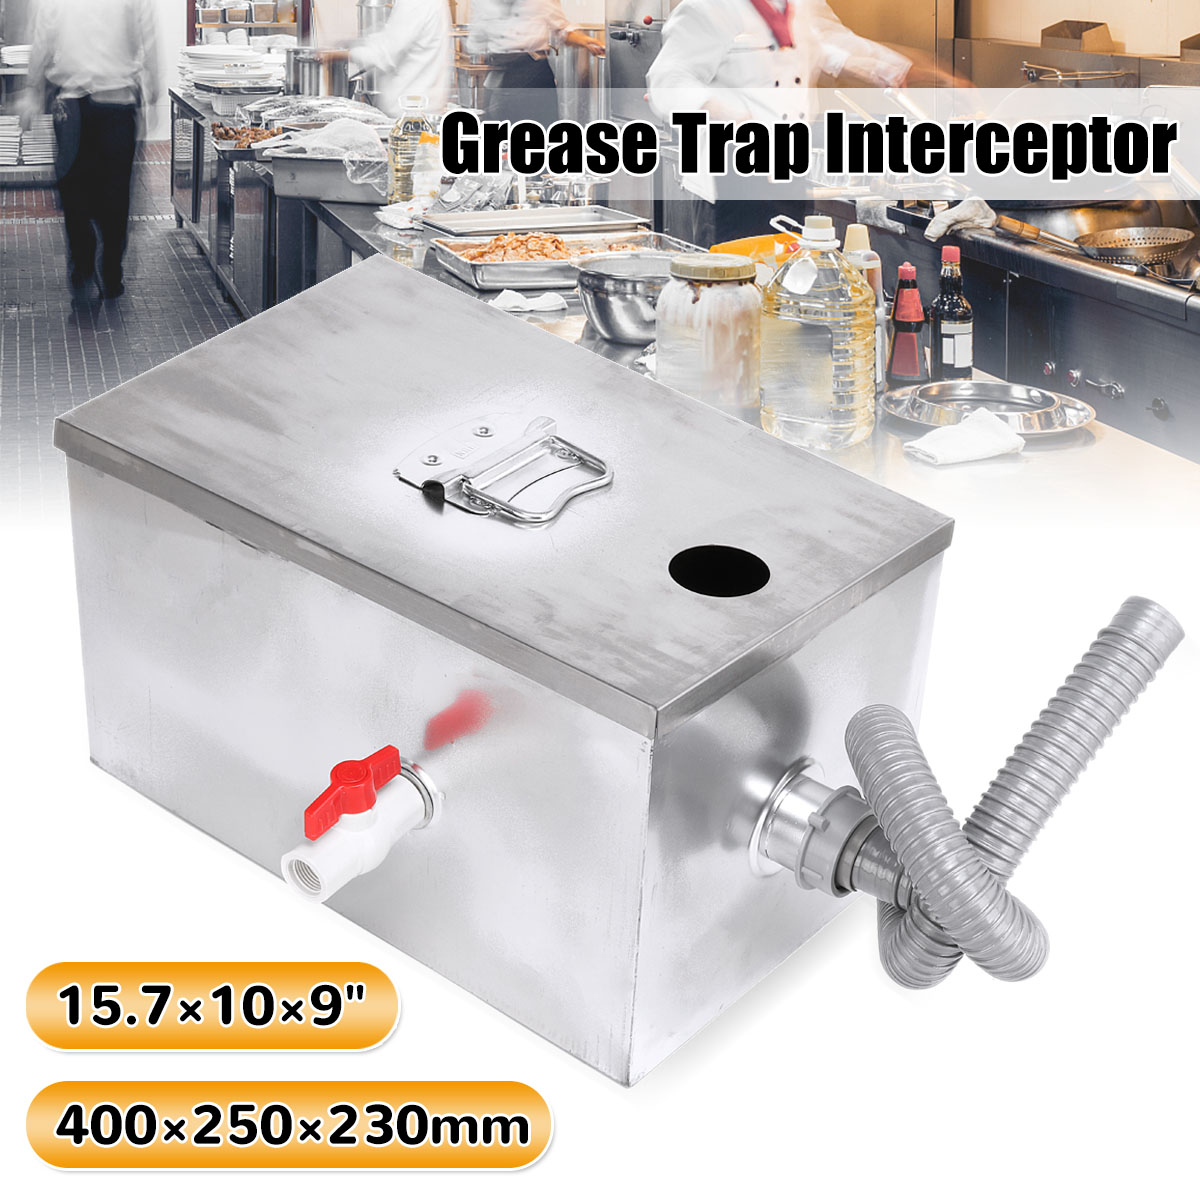 New Arrival Upgrade Grease Trap Stainless Steel Interceptor Trap Fat Thickened For Restaurant Kitchen WastewaterNew Arrival Upgrade Grease Trap Stainless Steel Interceptor Trap Fat Thickened For Restaurant Kitchen Wastewater